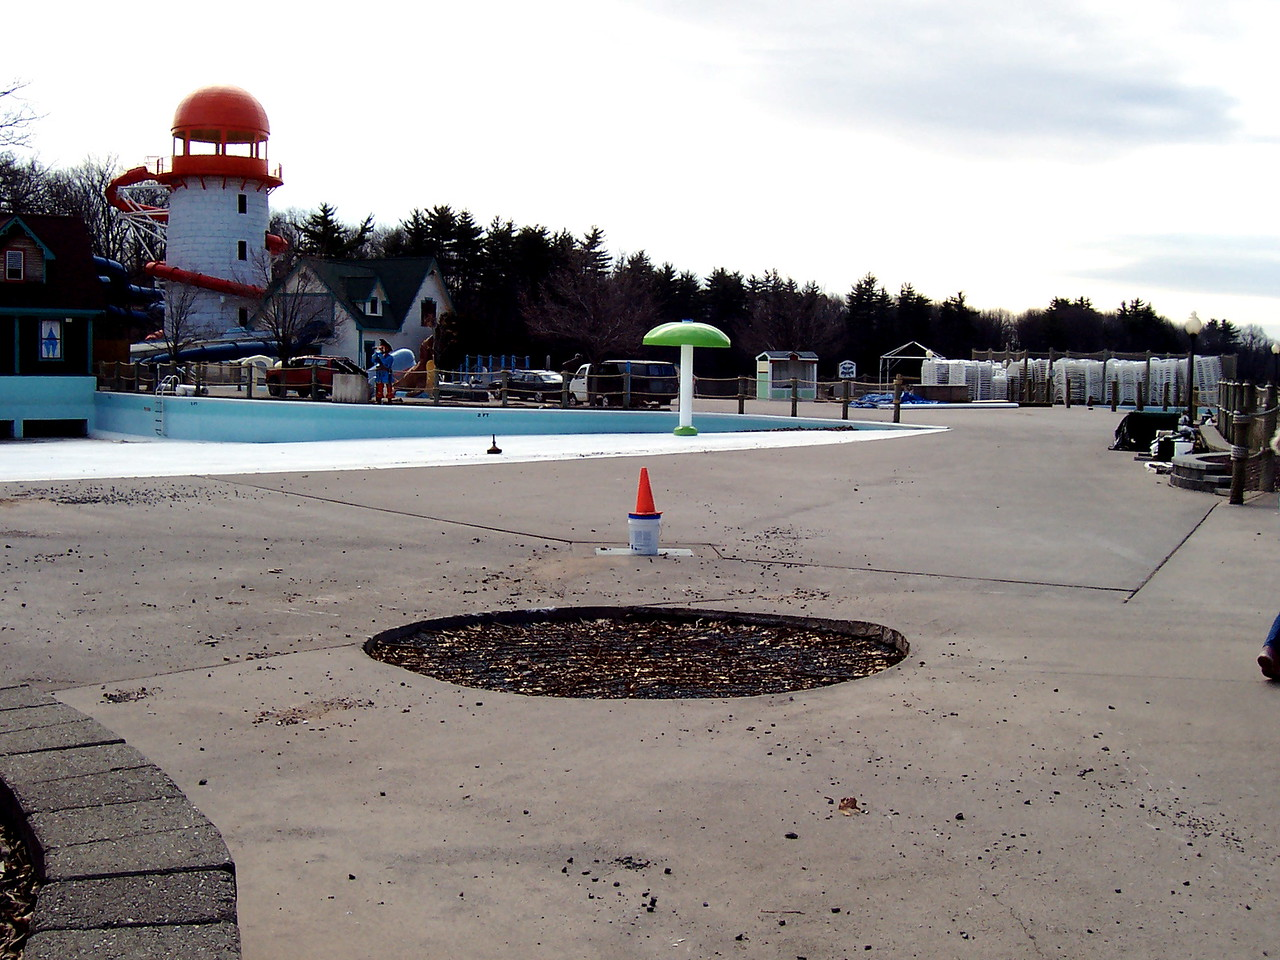 Removed mushroom in the water park.